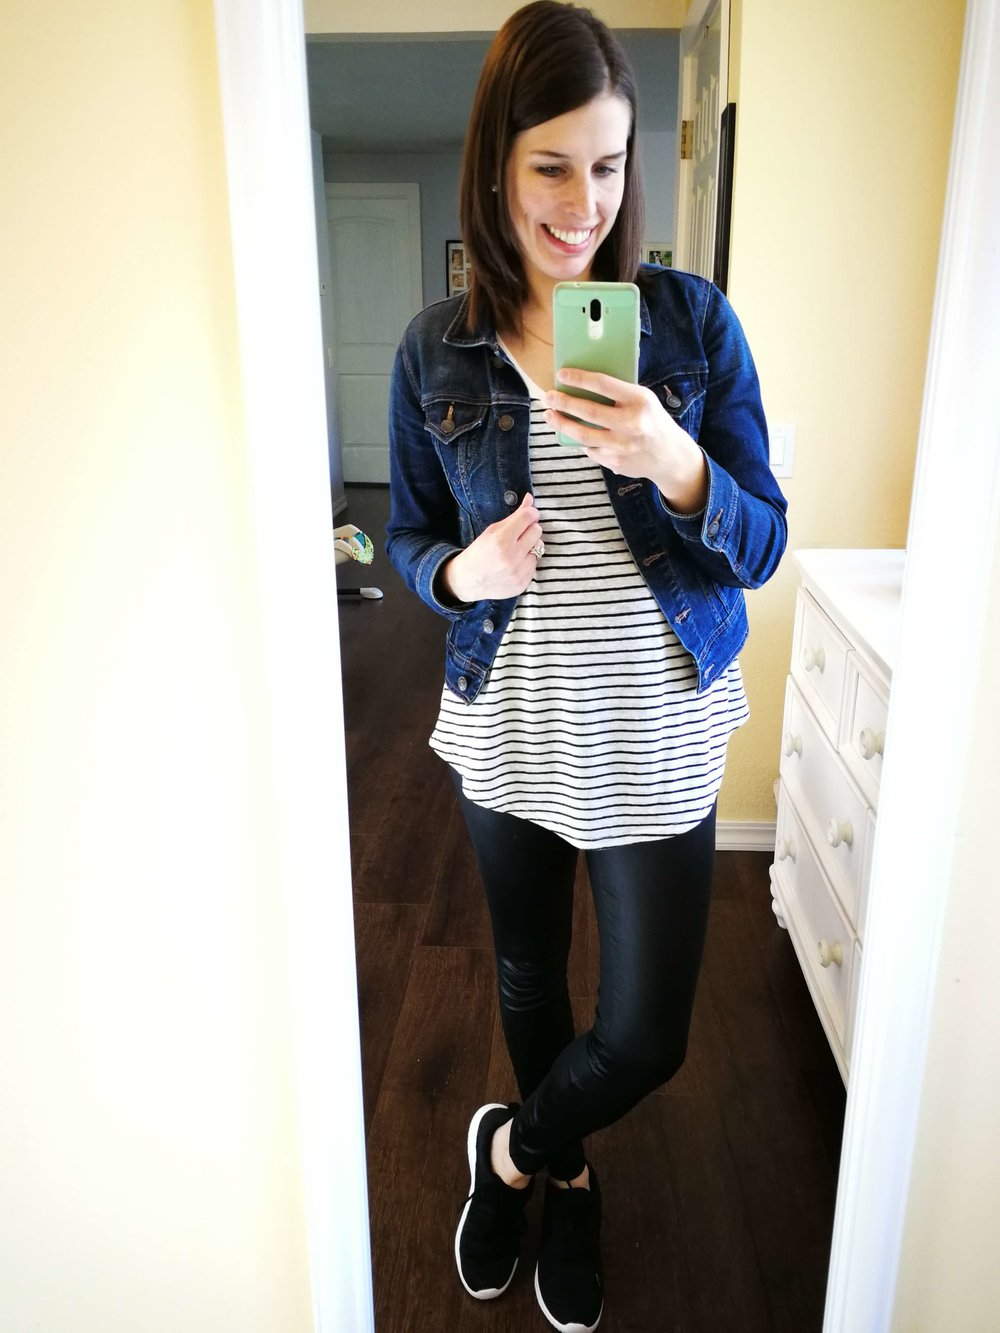 How to wear faux leather leggings. Cute casual chic outfit idea for winter or fall- Striped tee with round hem + denim jacket + sneakers.